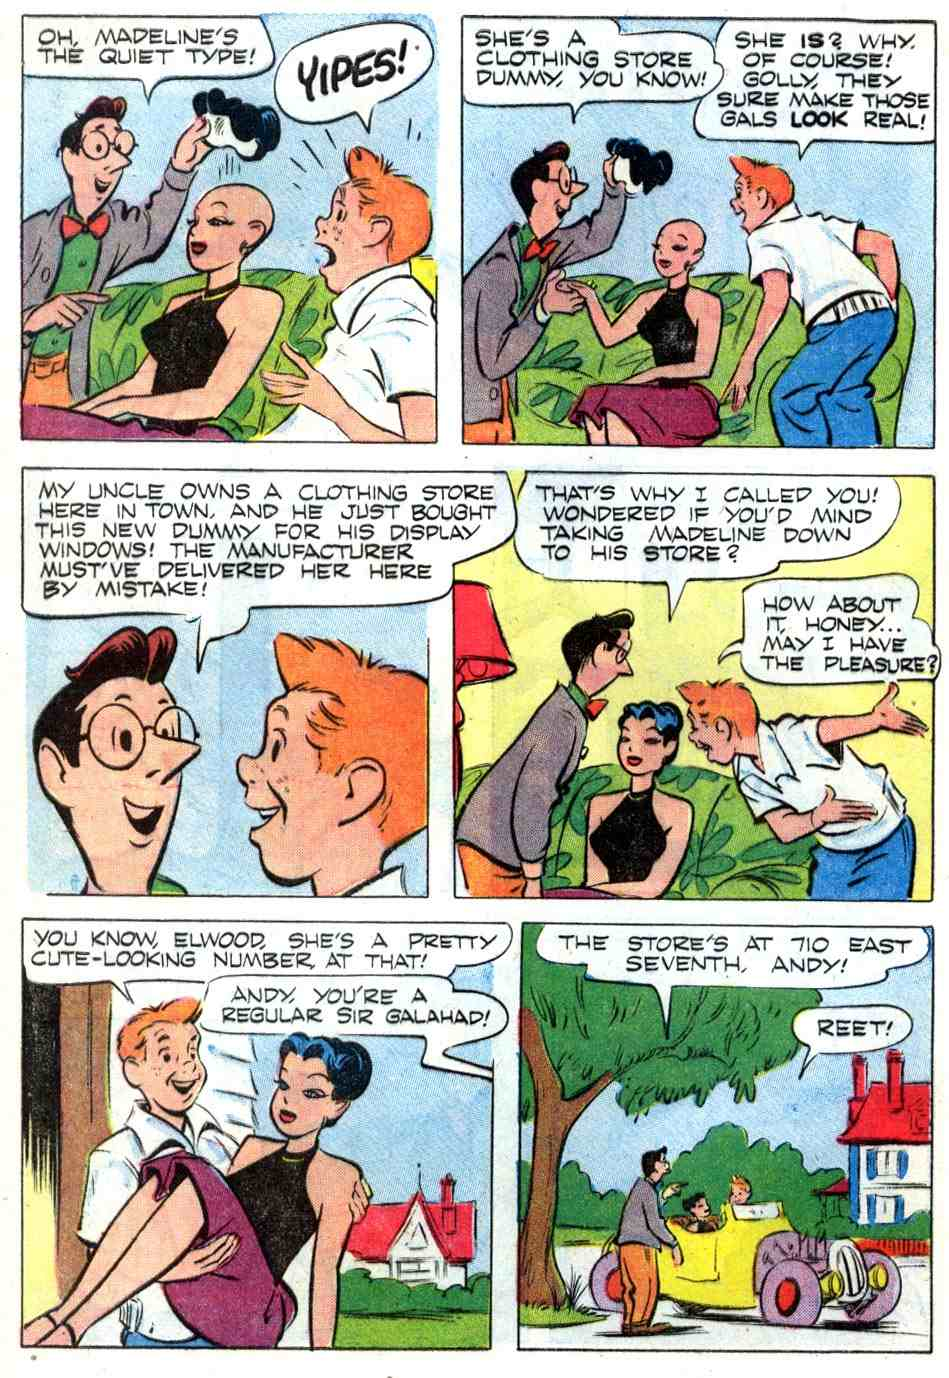 Andy-Hardy-Comic-Strips (4)